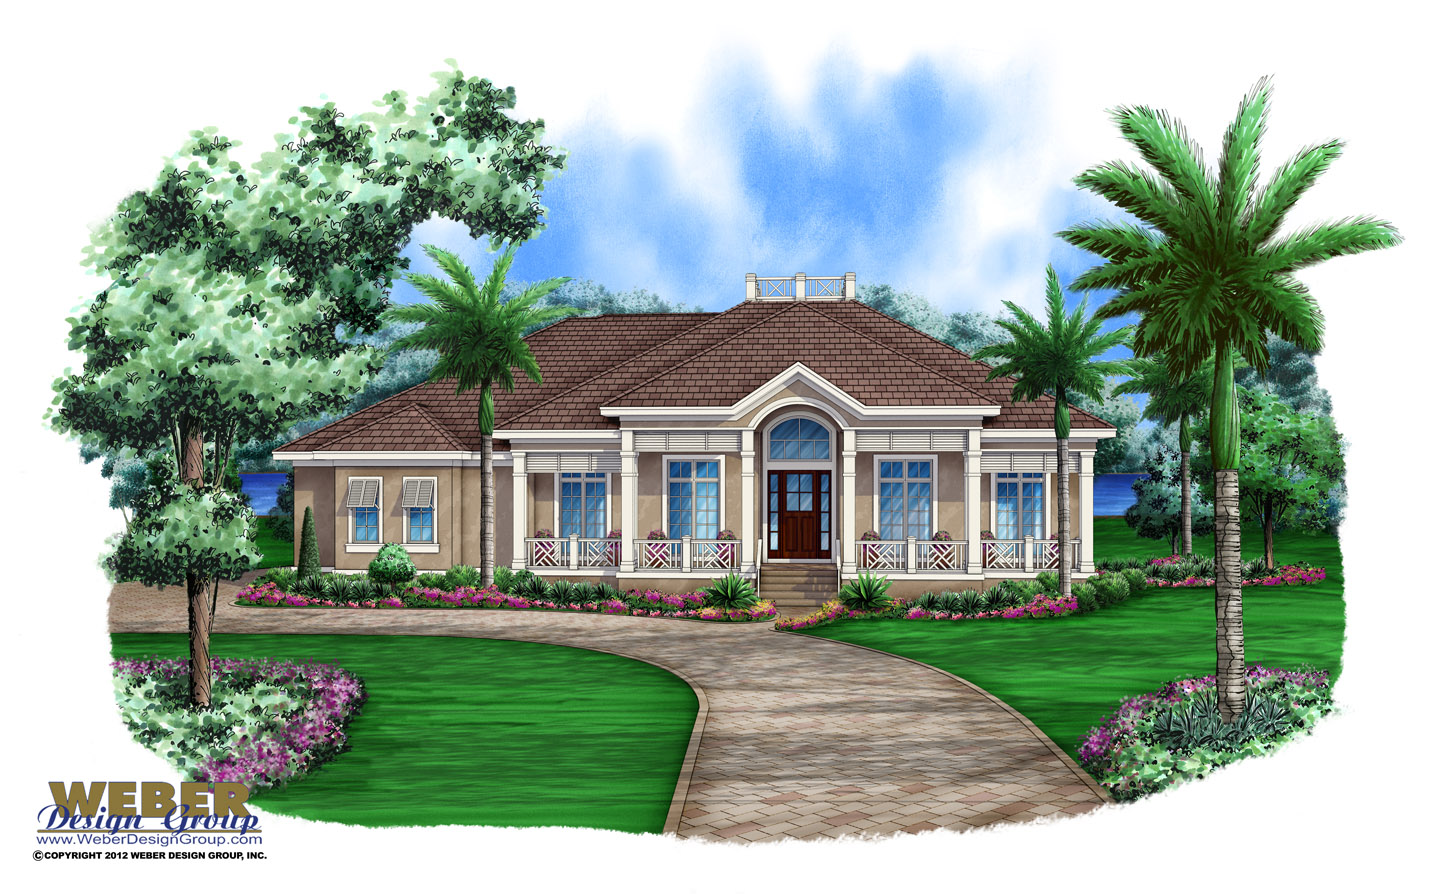 Free Designs For Homes Split Level Landscape on landscape designs for victorian homes, interior design for split level homes, landscape designs for log homes, kitchens for split level homes, decks for split level homes, landscape designs for ranch style homes,